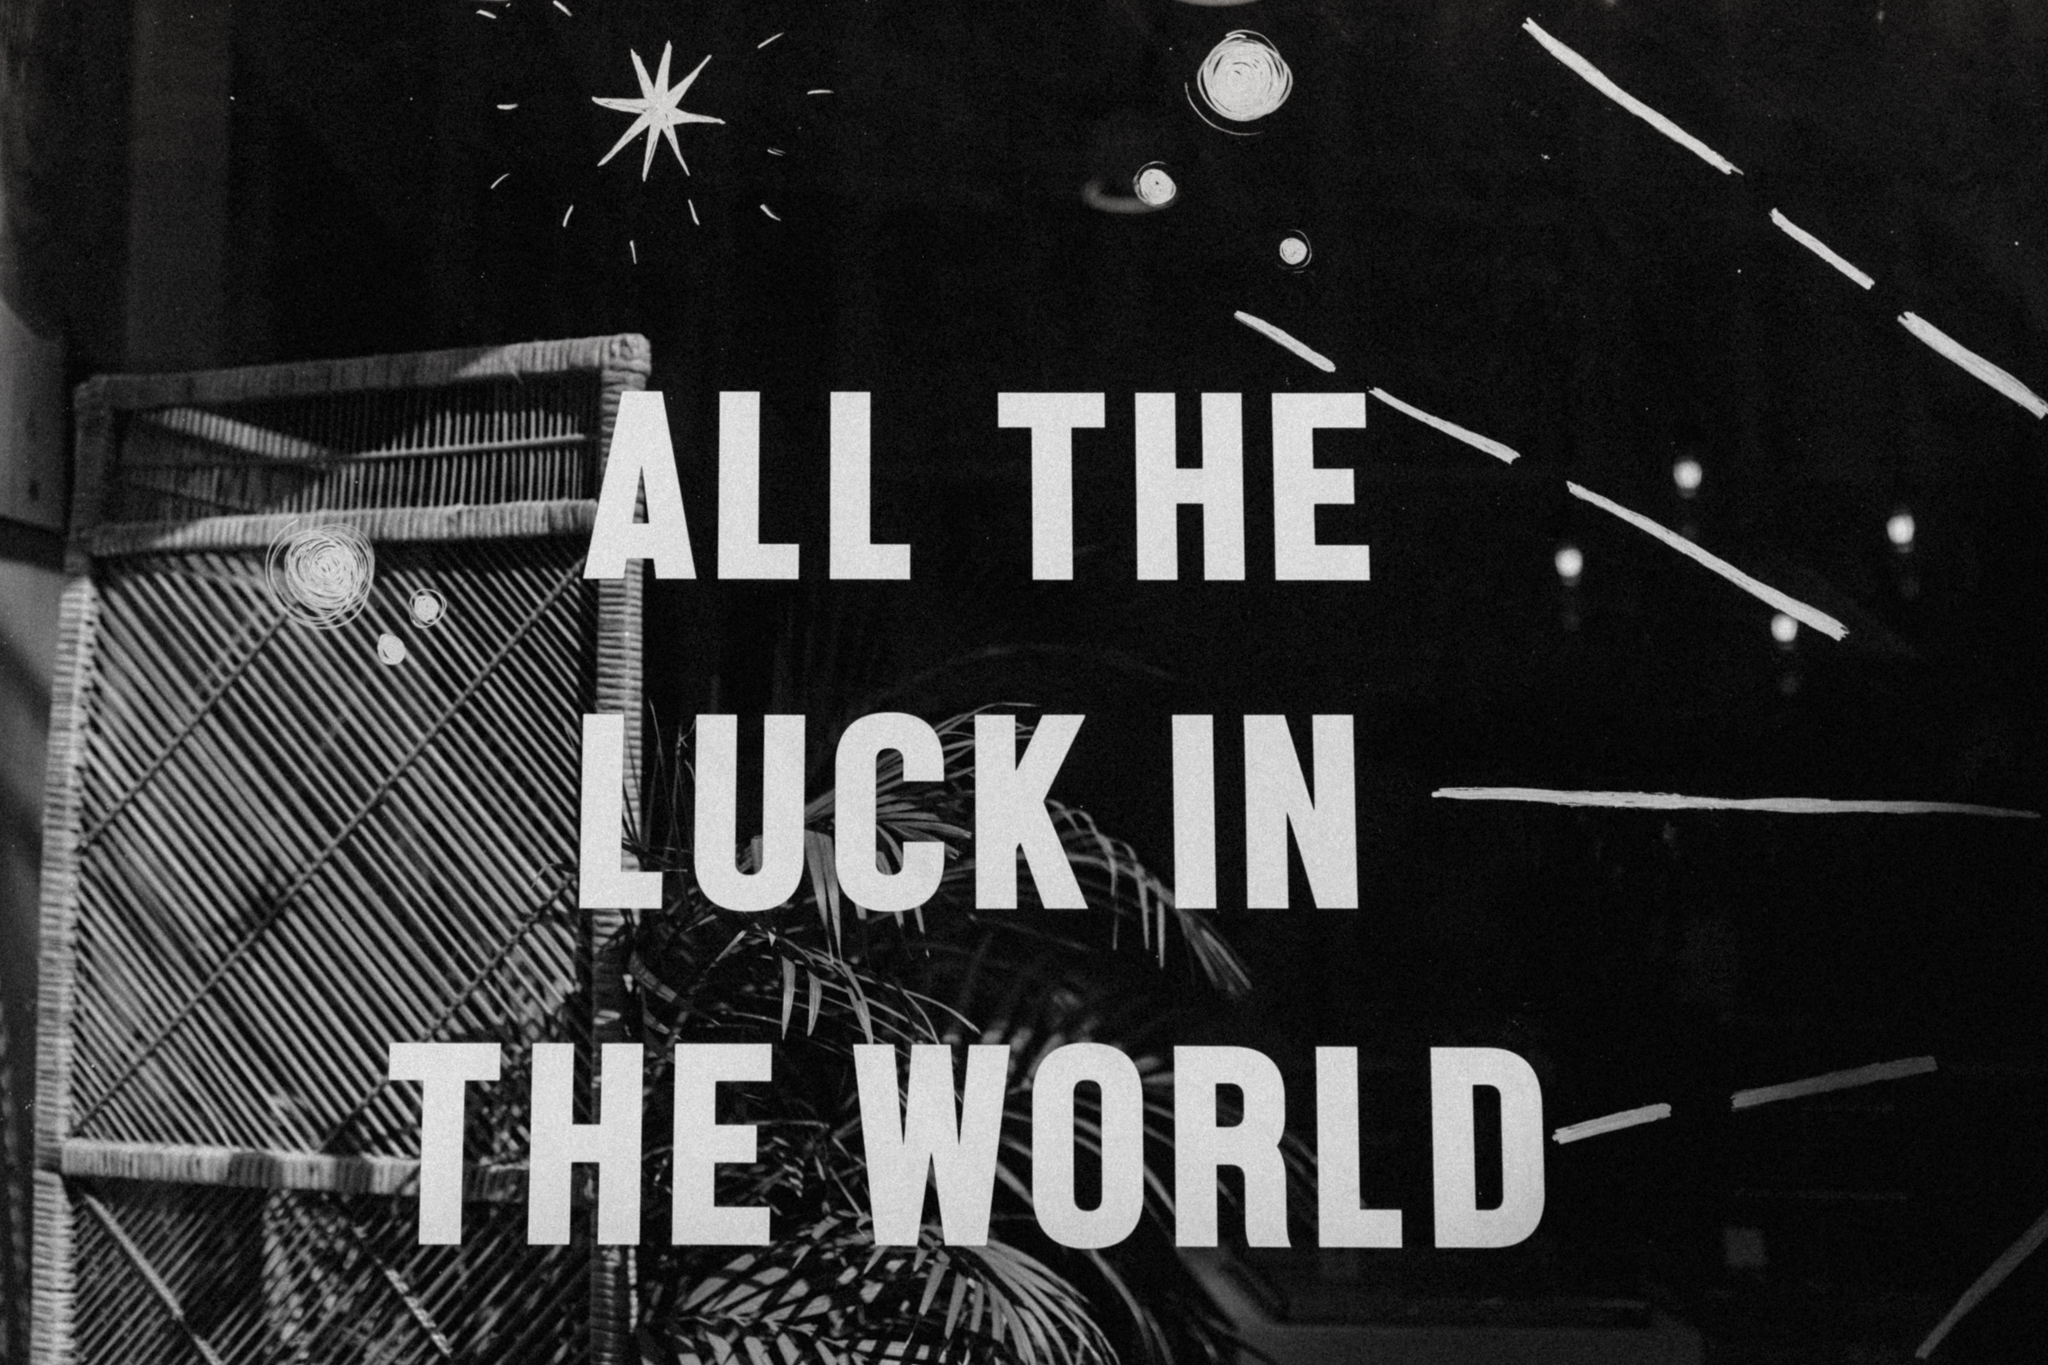 All the luck in the world sign on window